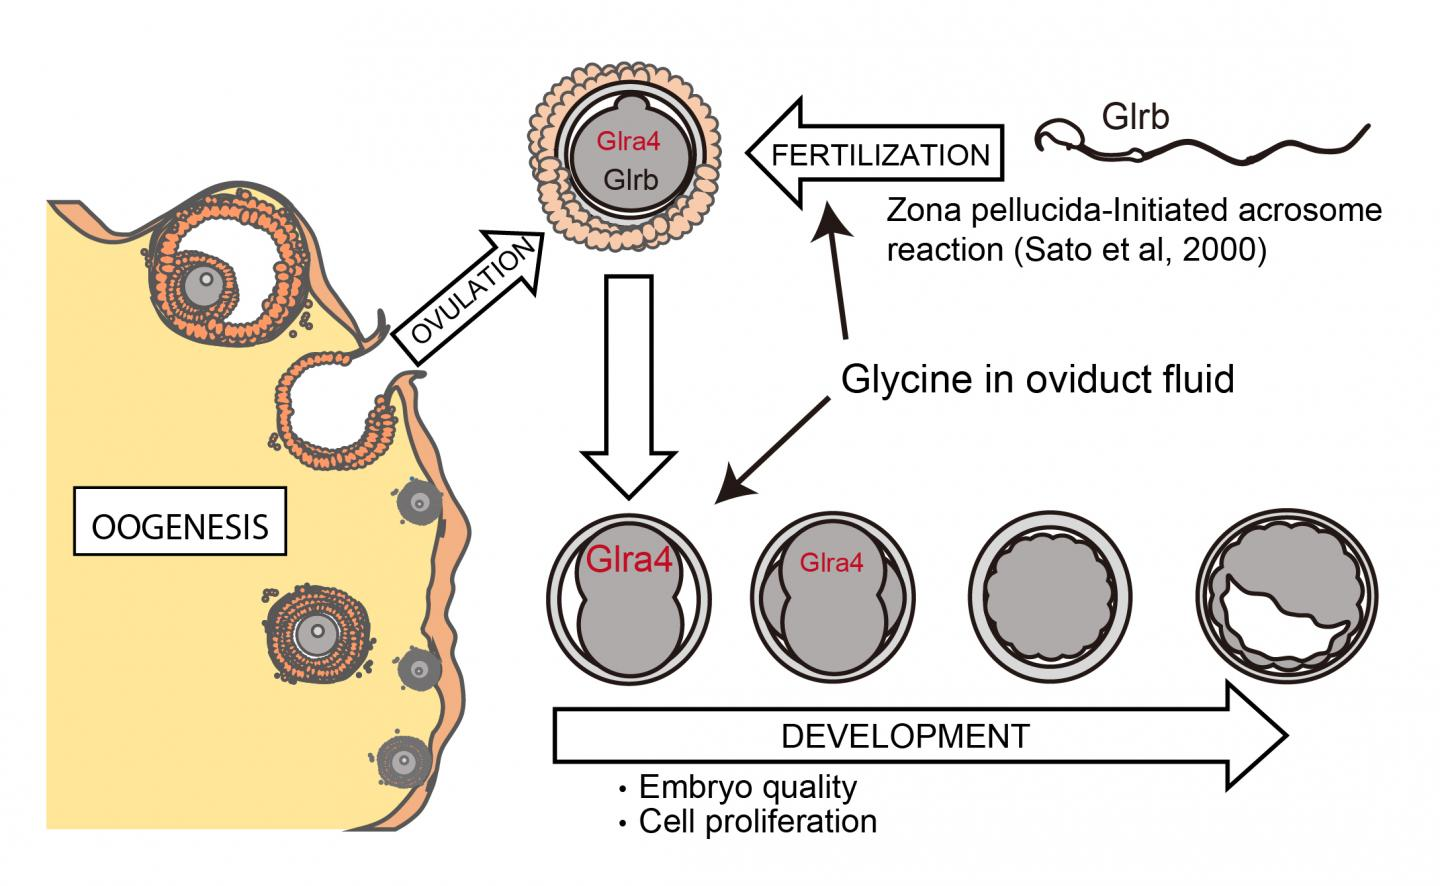 Graphical Abstract of the Putative Role of Glycine Receptors from Fertilization to Early Development